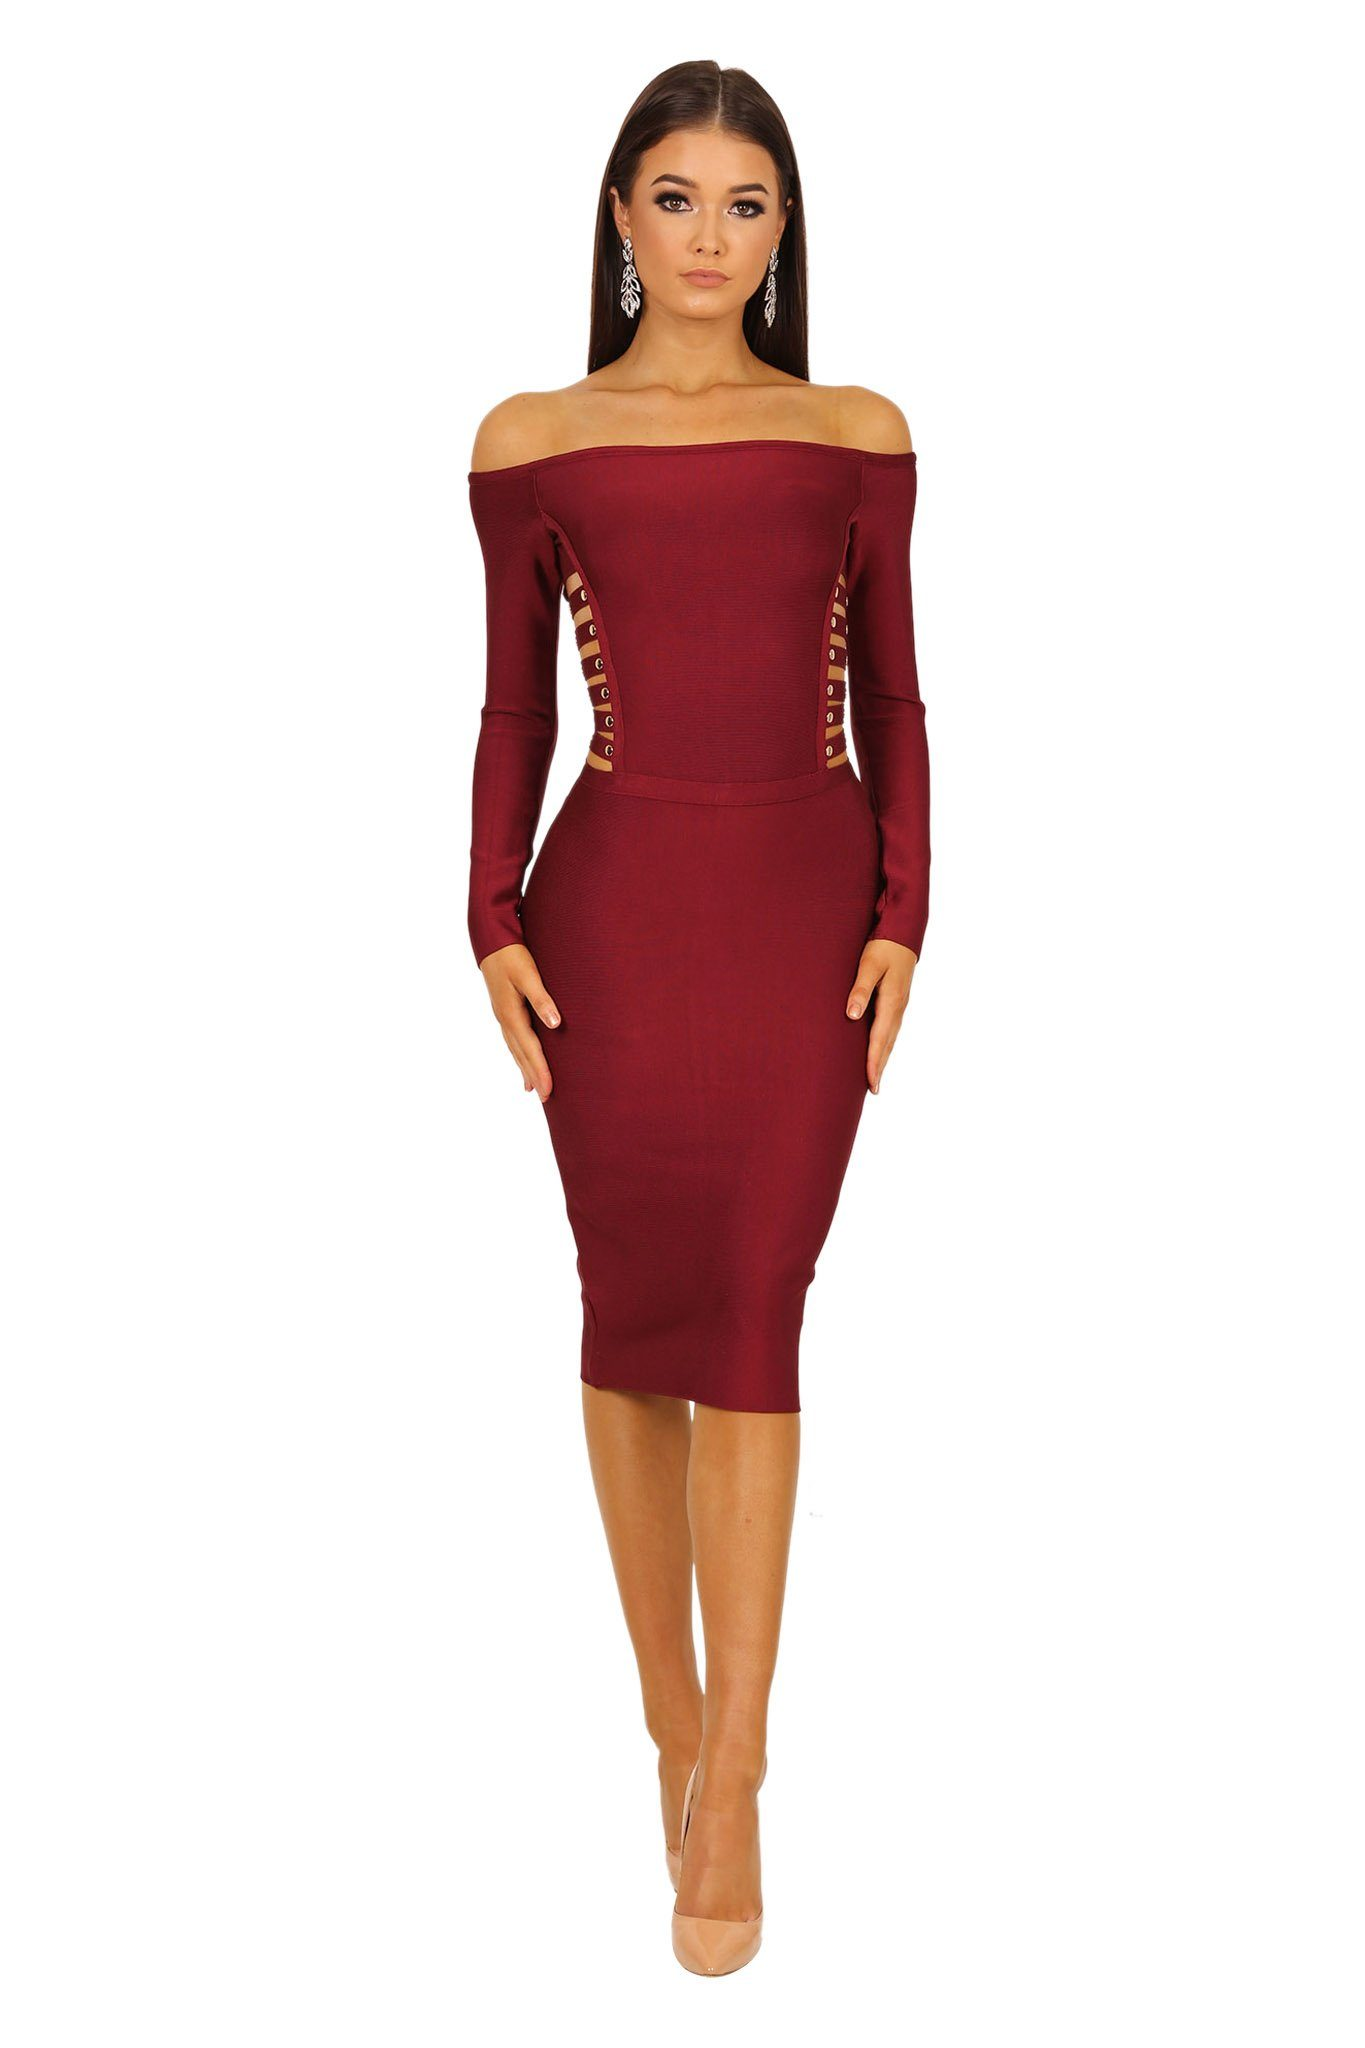 f182e090bcf3 Off-shoulder long sleeve bandage dress with cut out sides and gold buttons  in wine